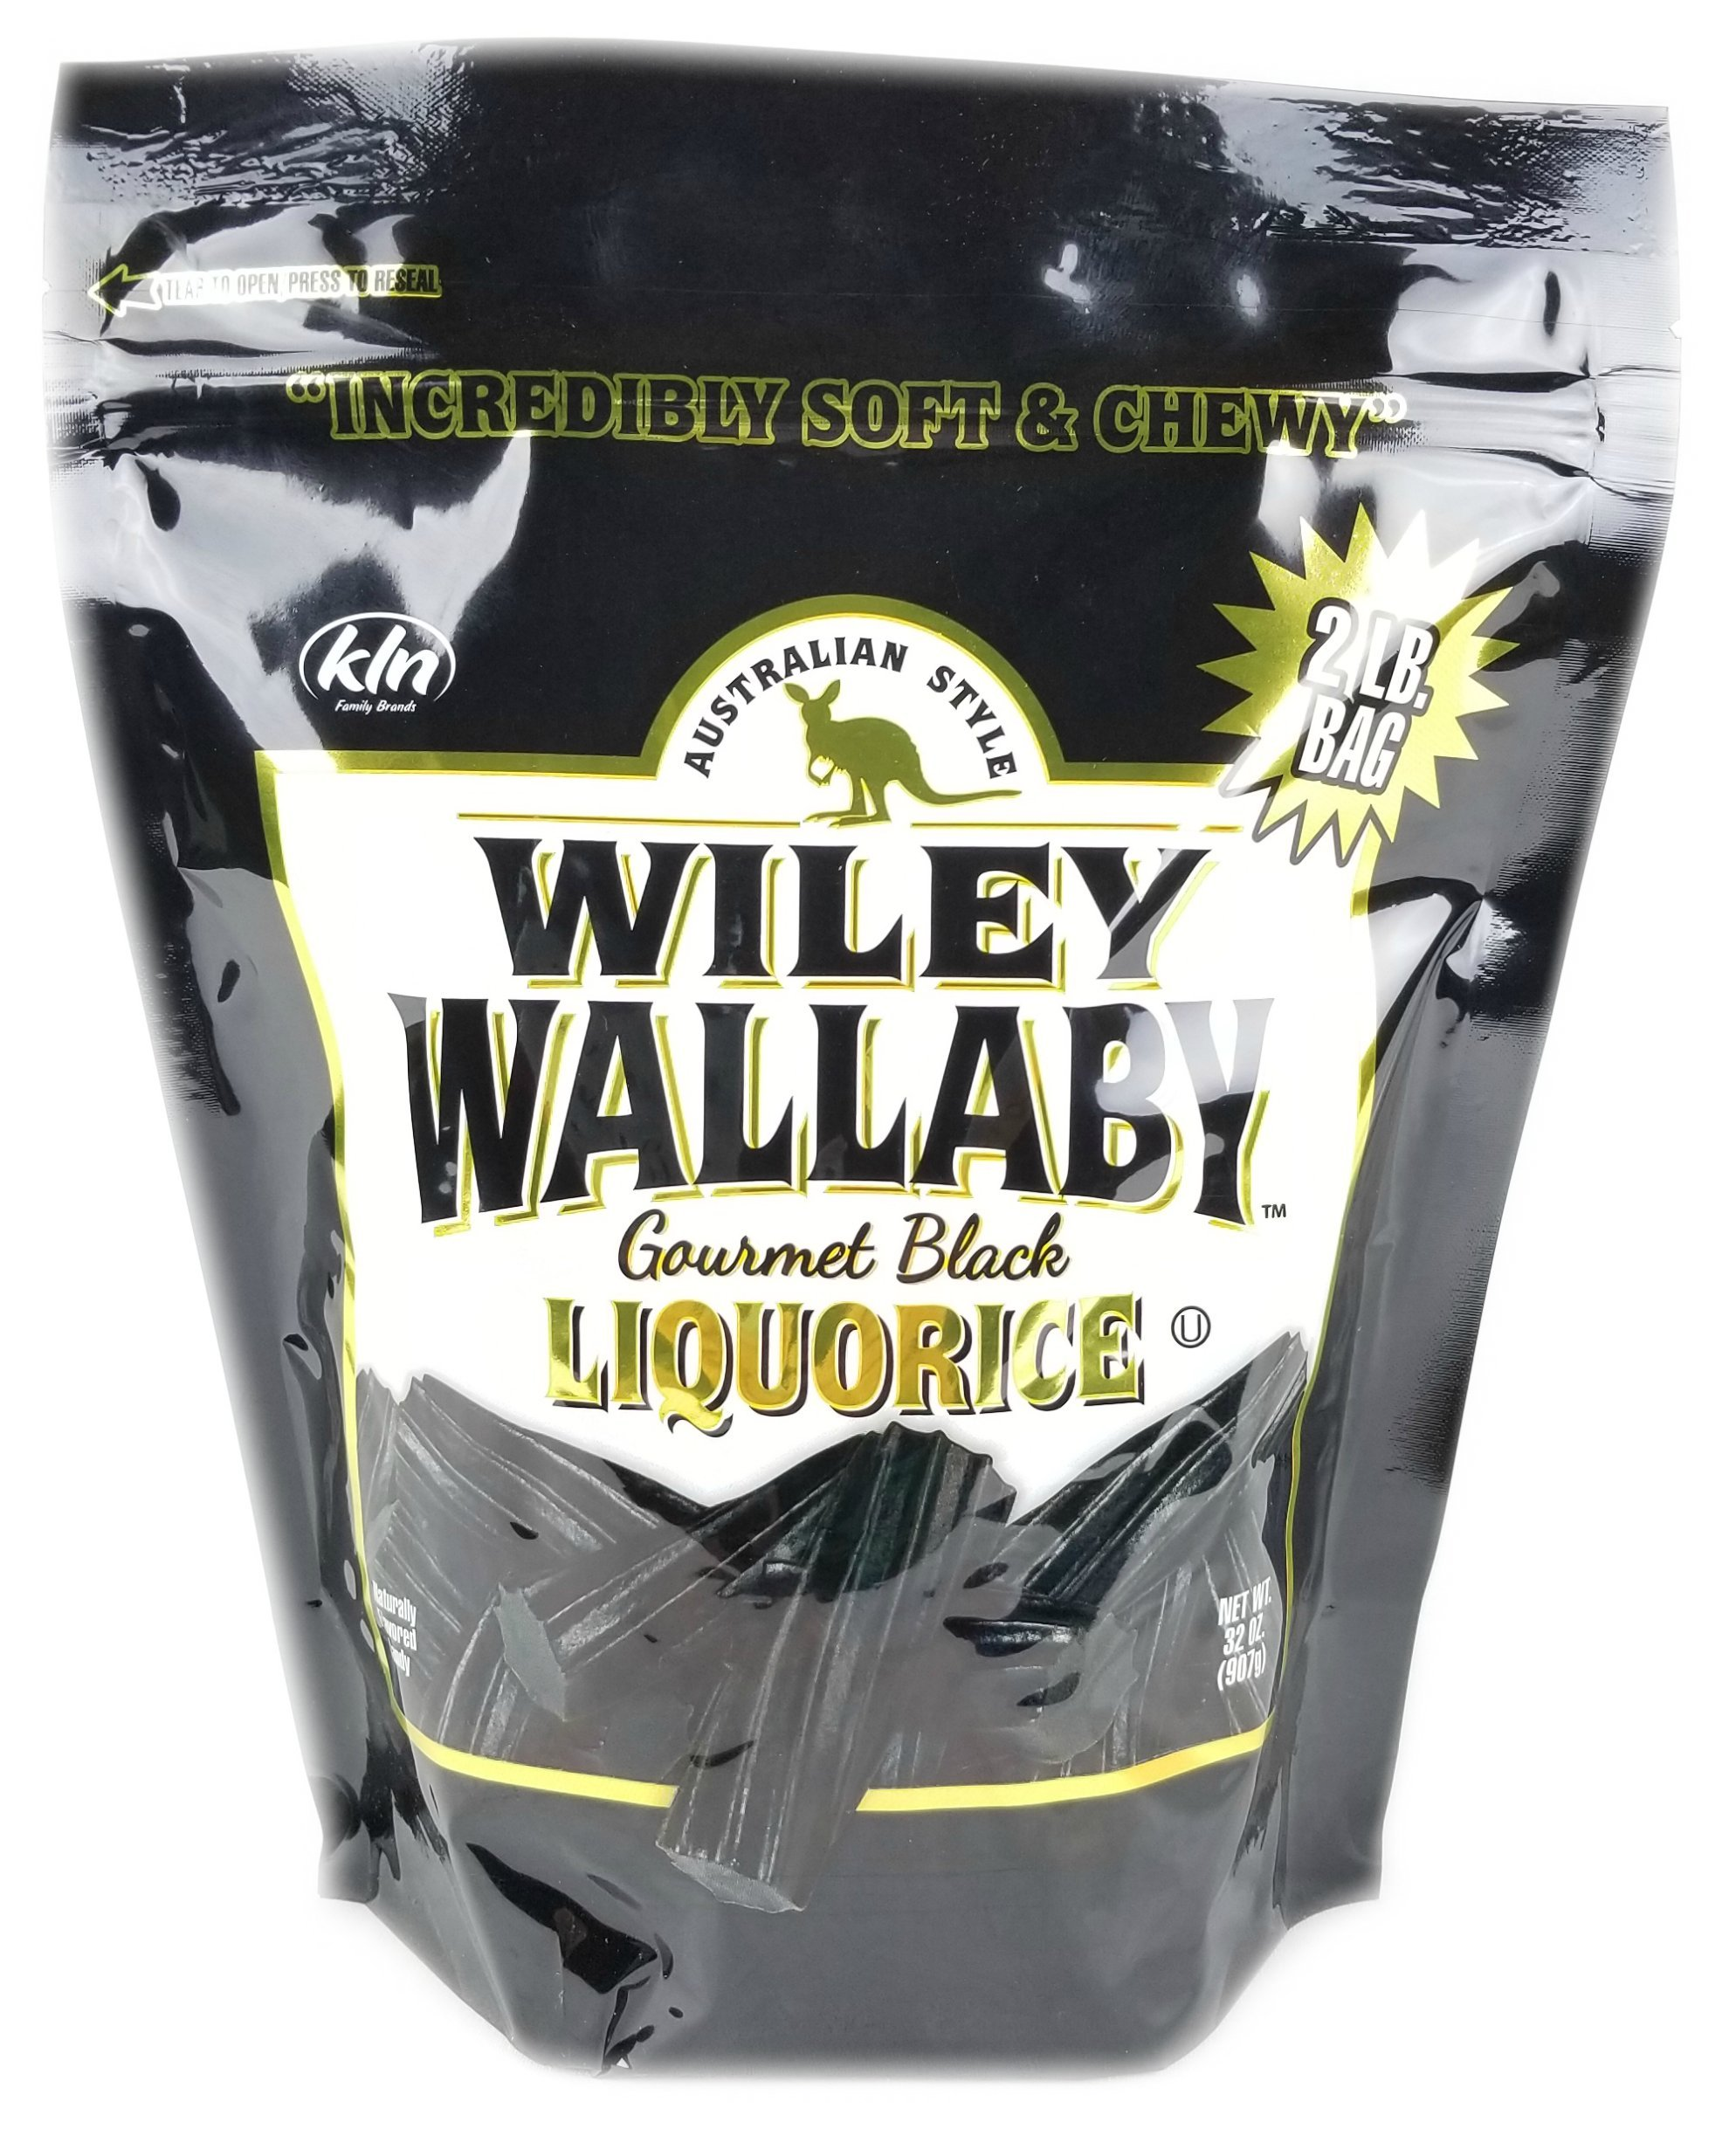 Wiley Wallaby Australian Gourmet Style Black Licorice Candy 32 Oz. 2 LB by Wiley Wallaby